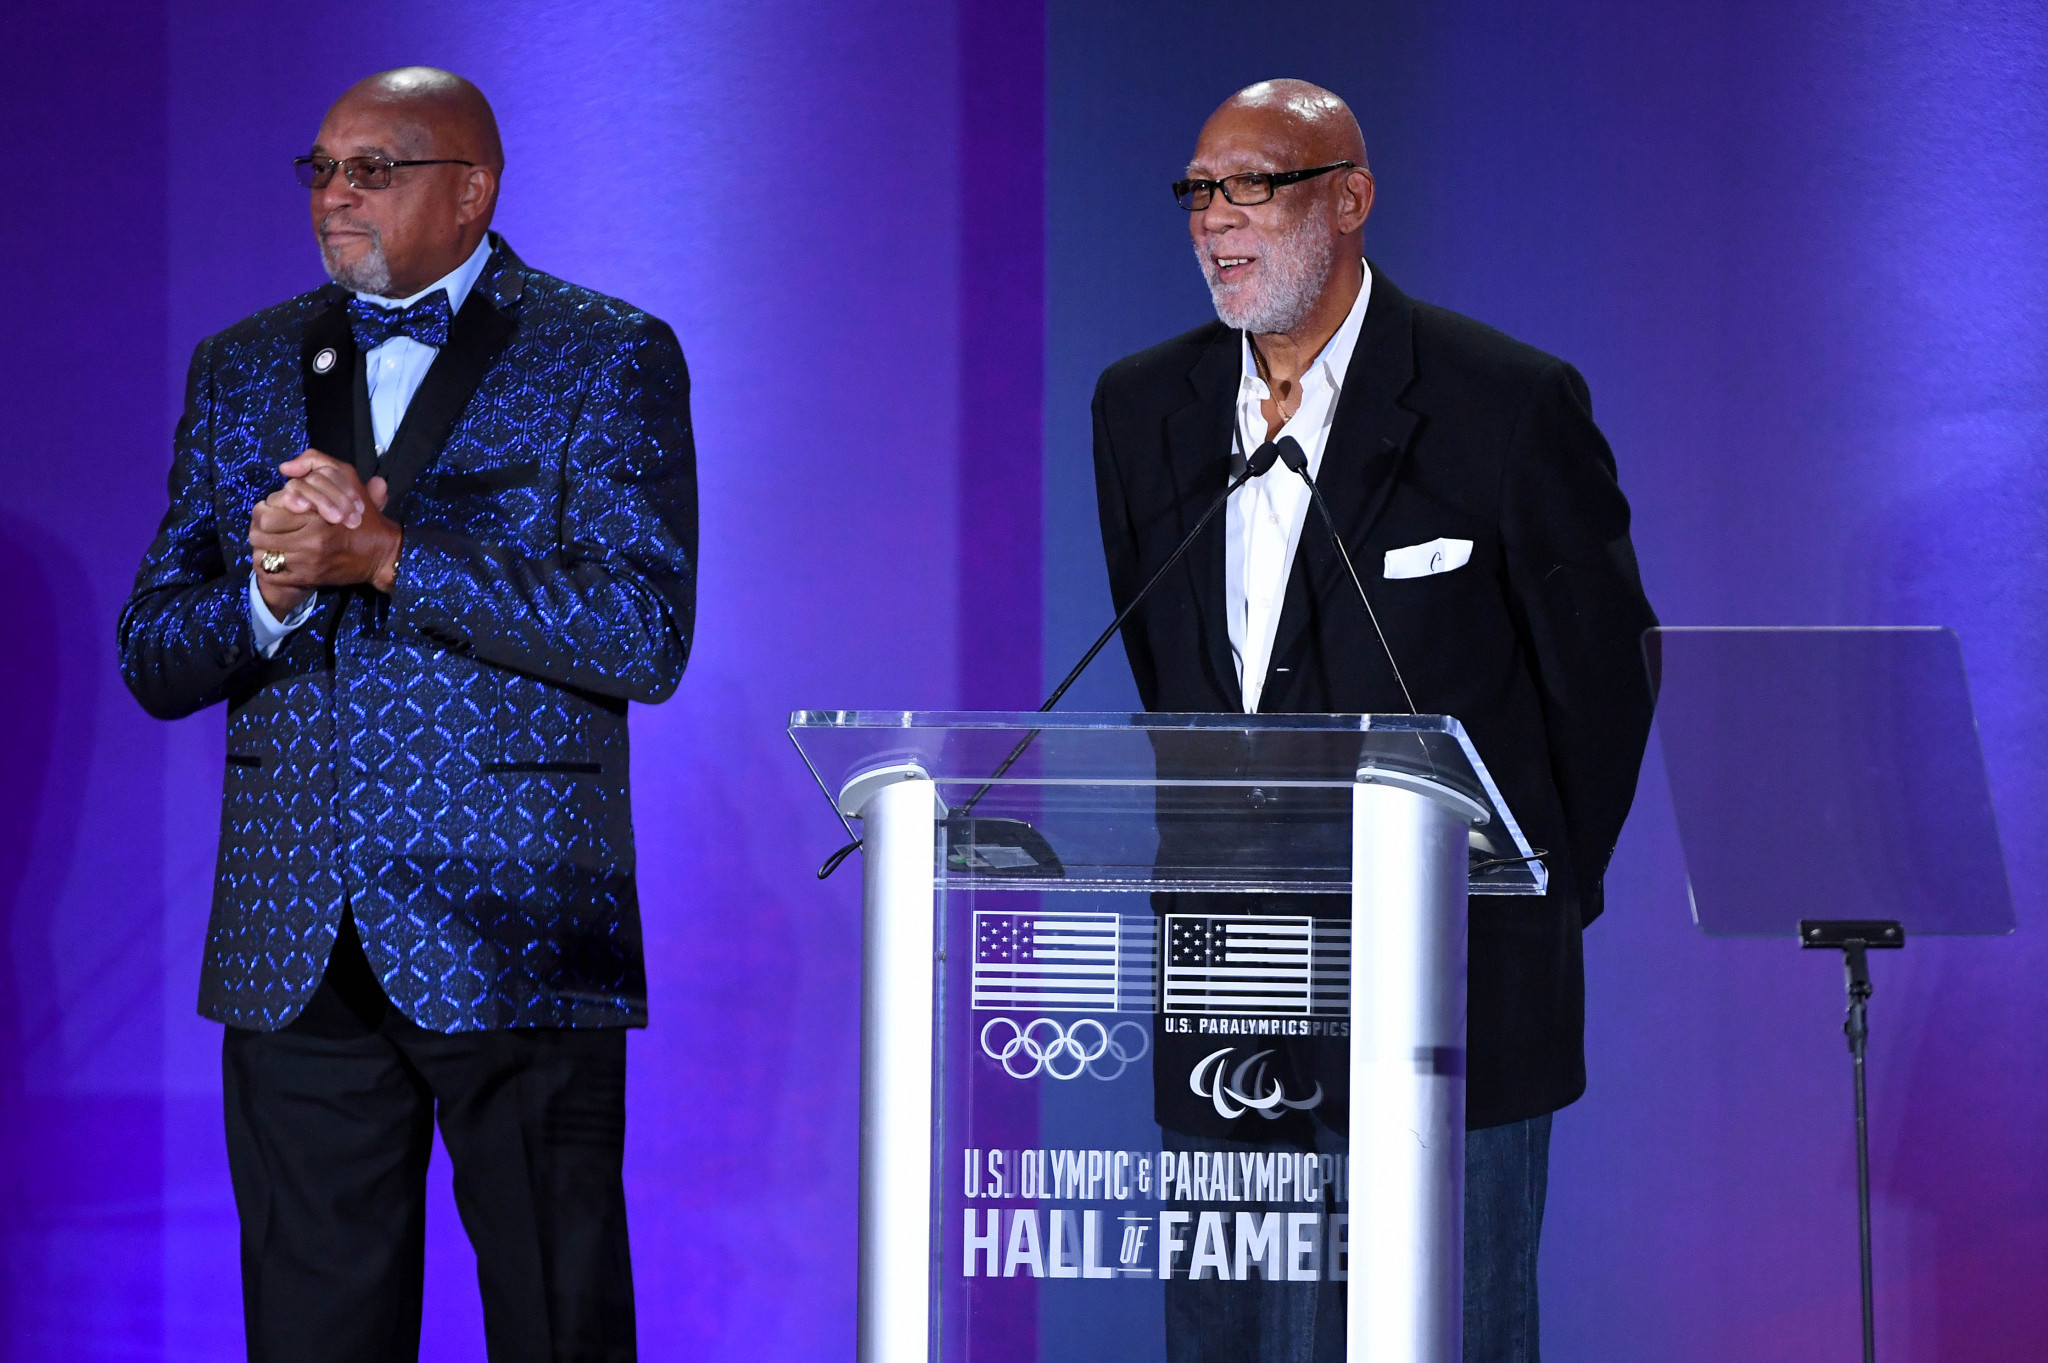 Black power sprinters Tommie Smith and John Carlos have been inducted into the USOPC Hall of Fame ©Getty Images